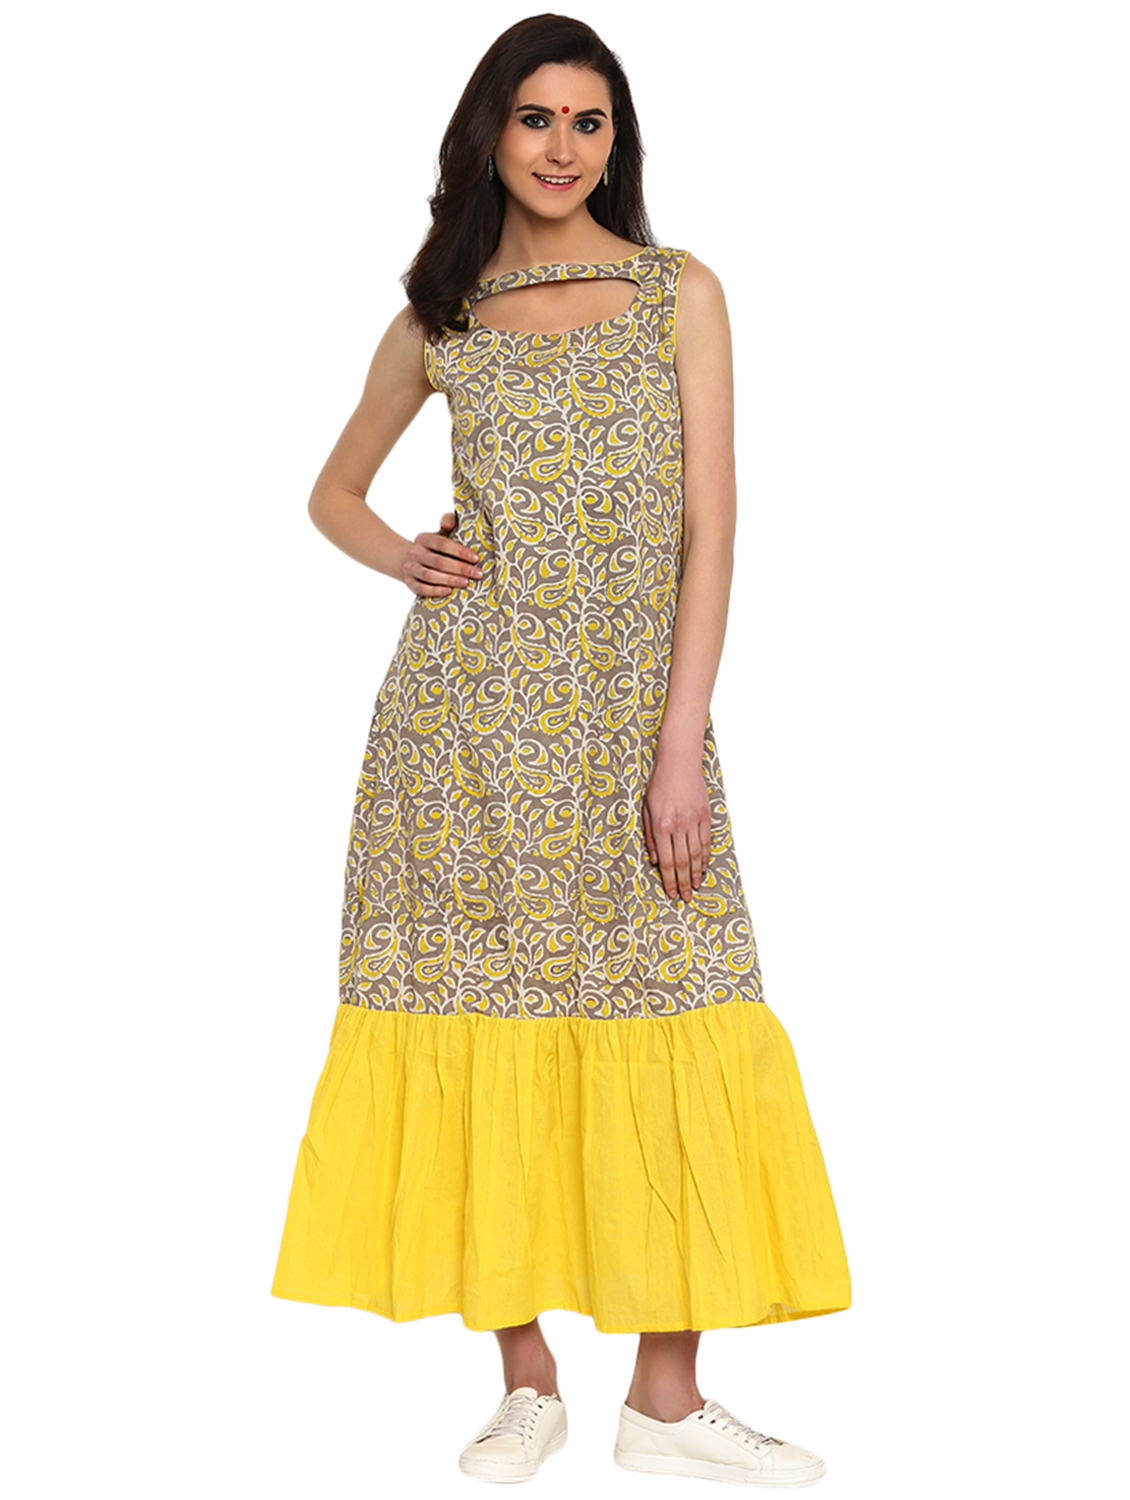 beyond-gallery-ethnic-wear-fashion-style-dresses (20)-kurta-dress